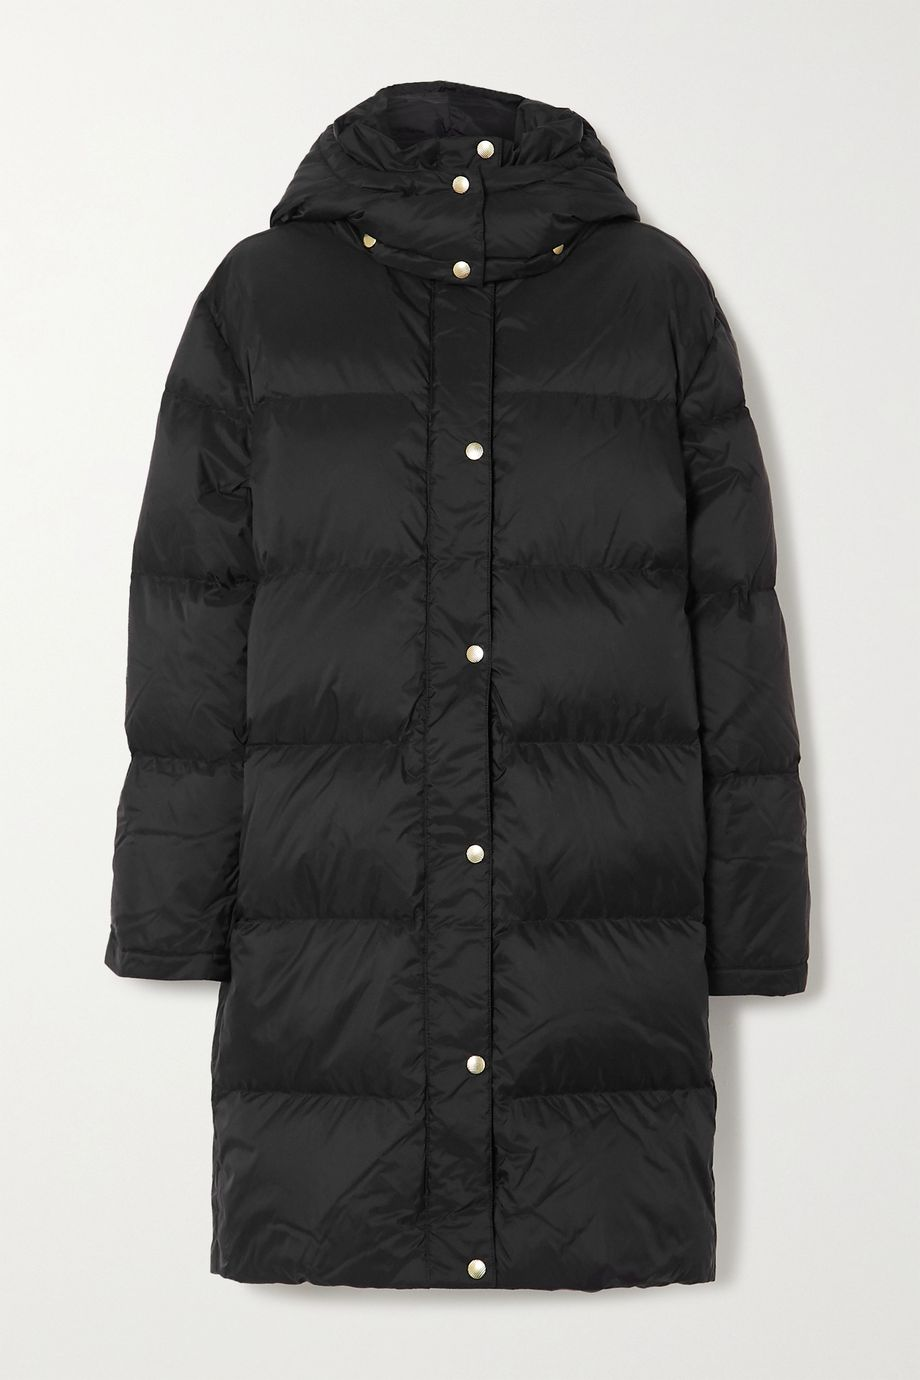 By Malene Birger Ebba quilted shell hooded coat